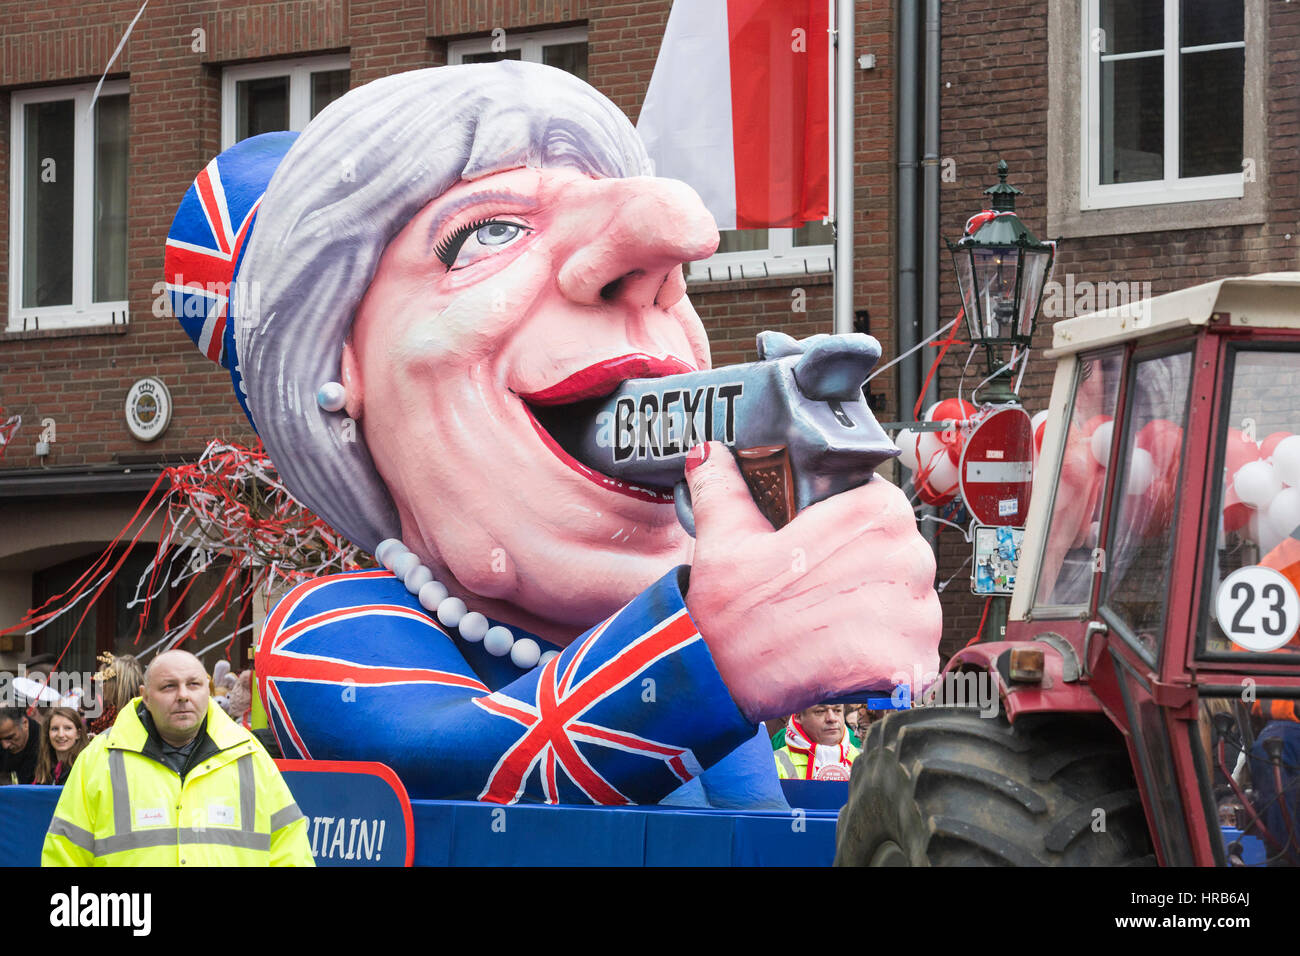 Düsseldorf, Germany. 27 February 2017. Theresa May shooting herself in the mouth over Brexit. Carnival parade - Stock Image